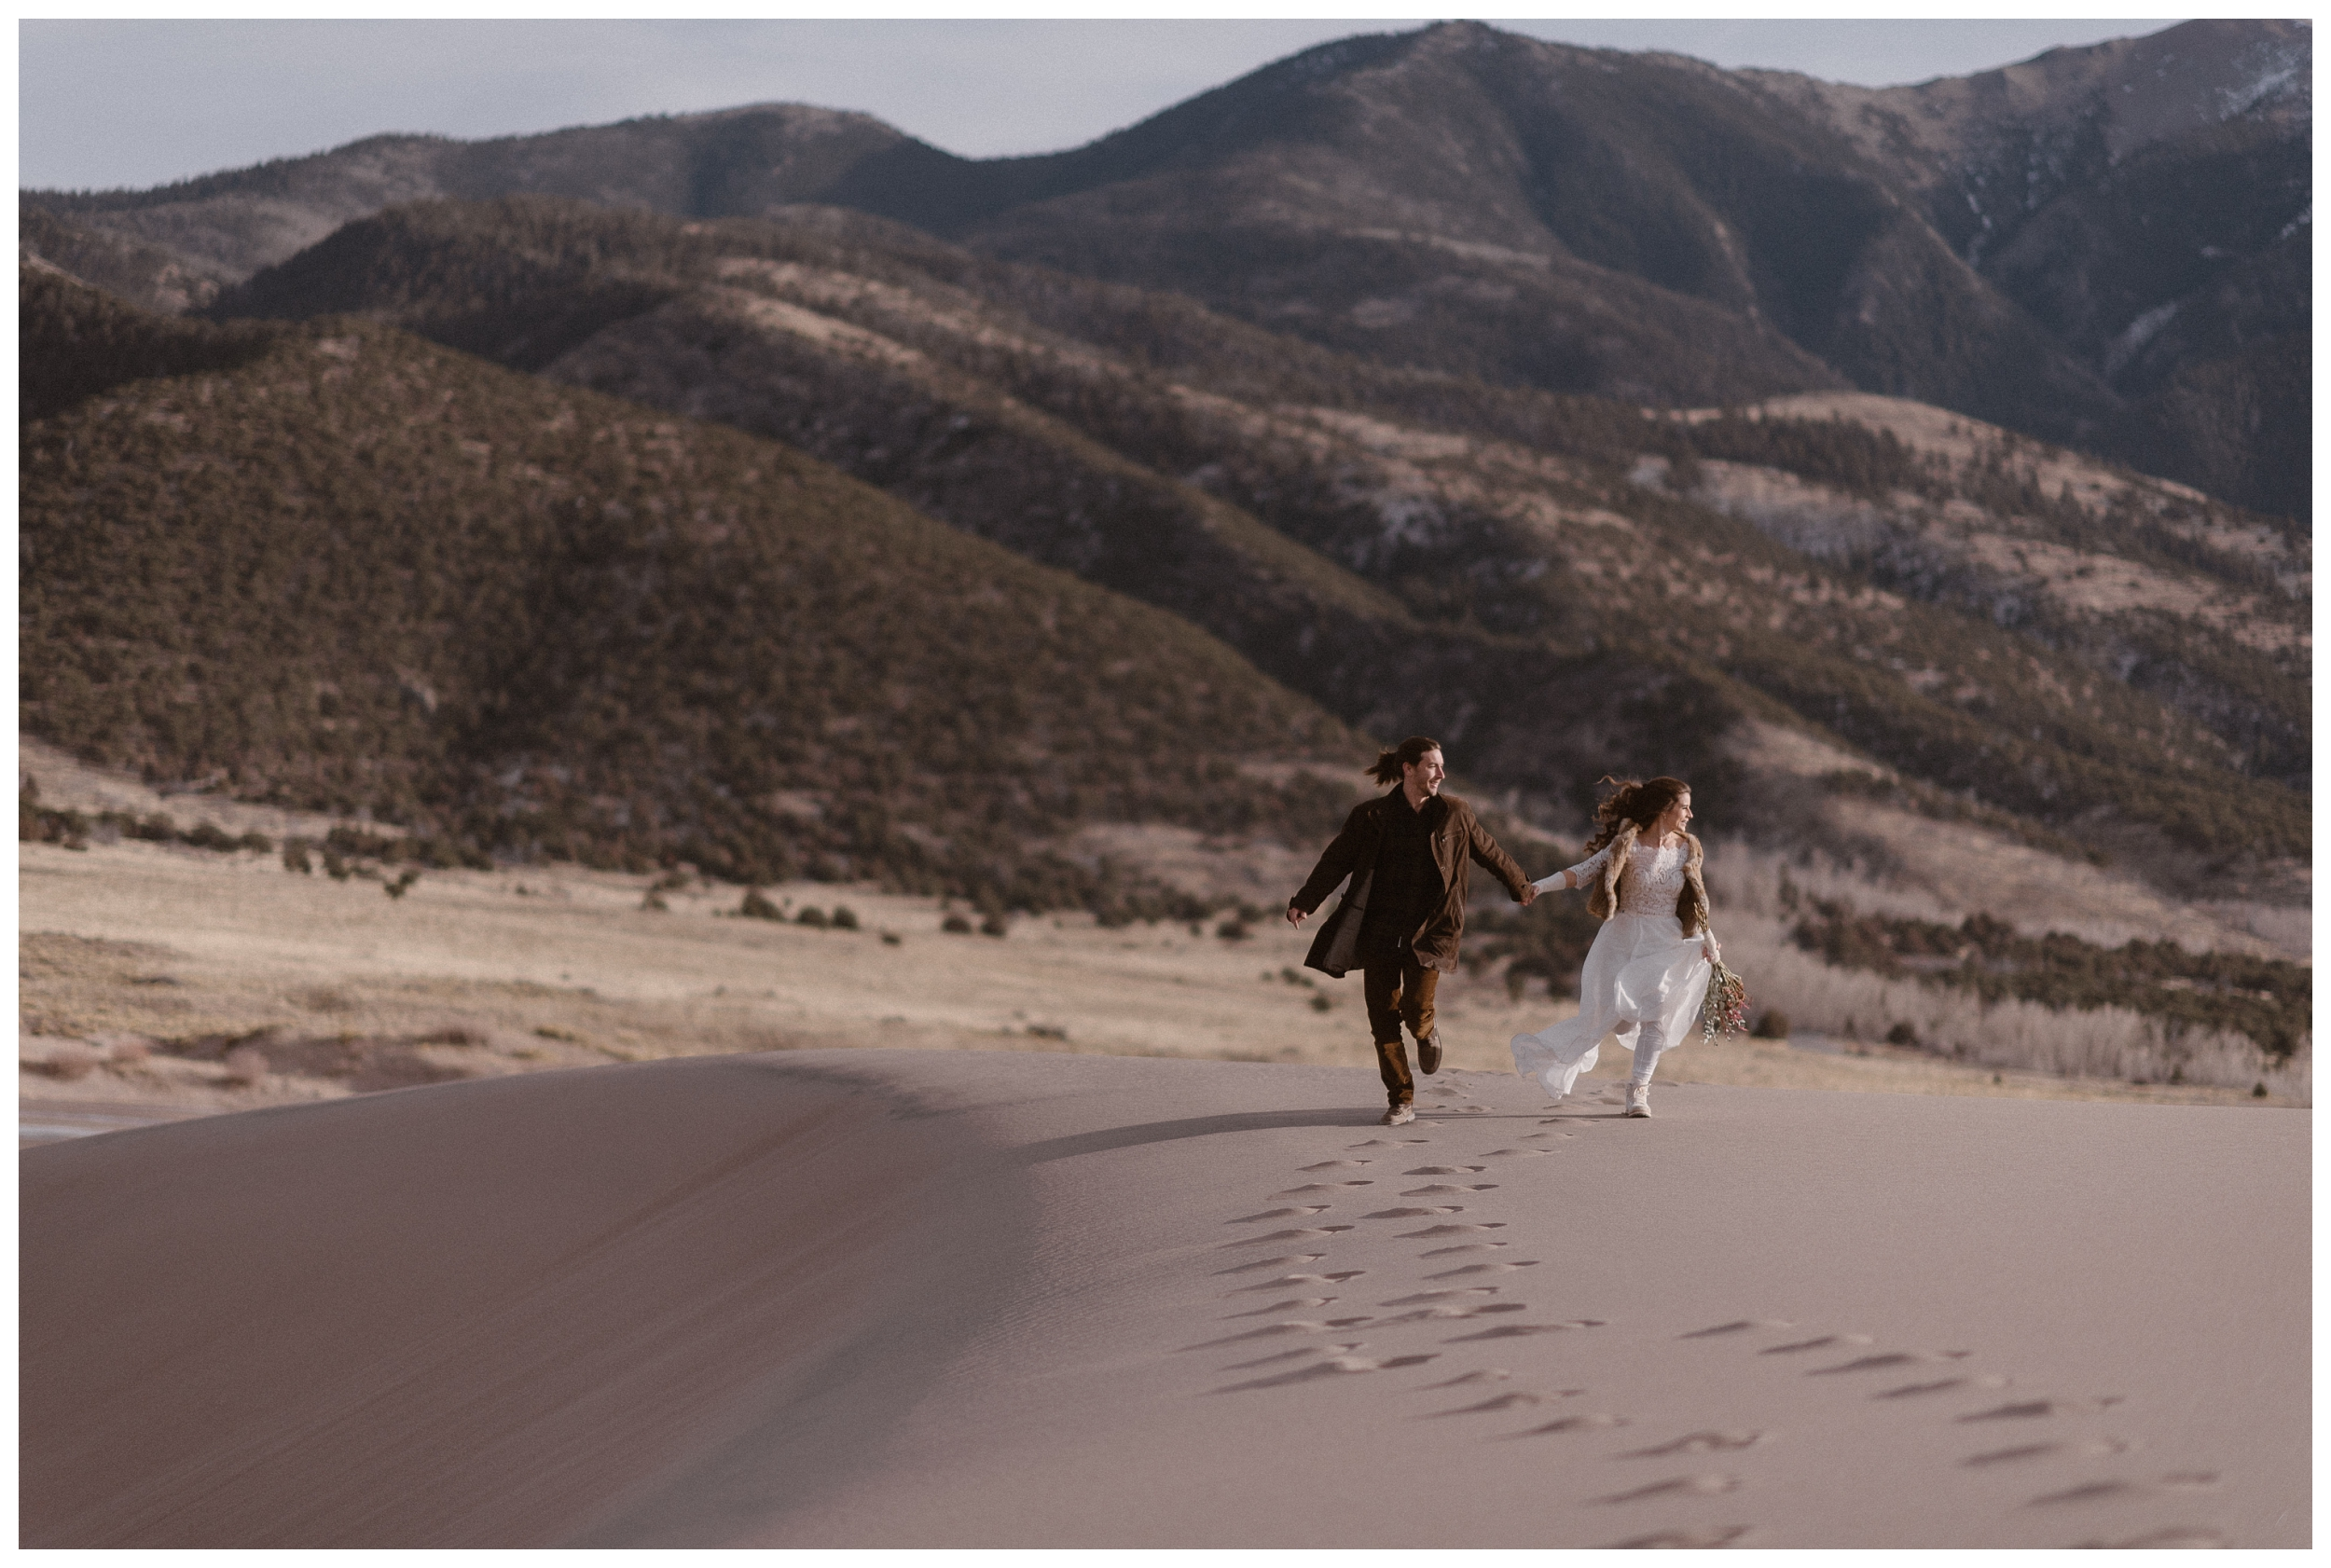 Olivia and Justin explore Great Sand Dunes National Park together before their winter elopement. Photo by Maddie Mae Photo, Adventures Instead.